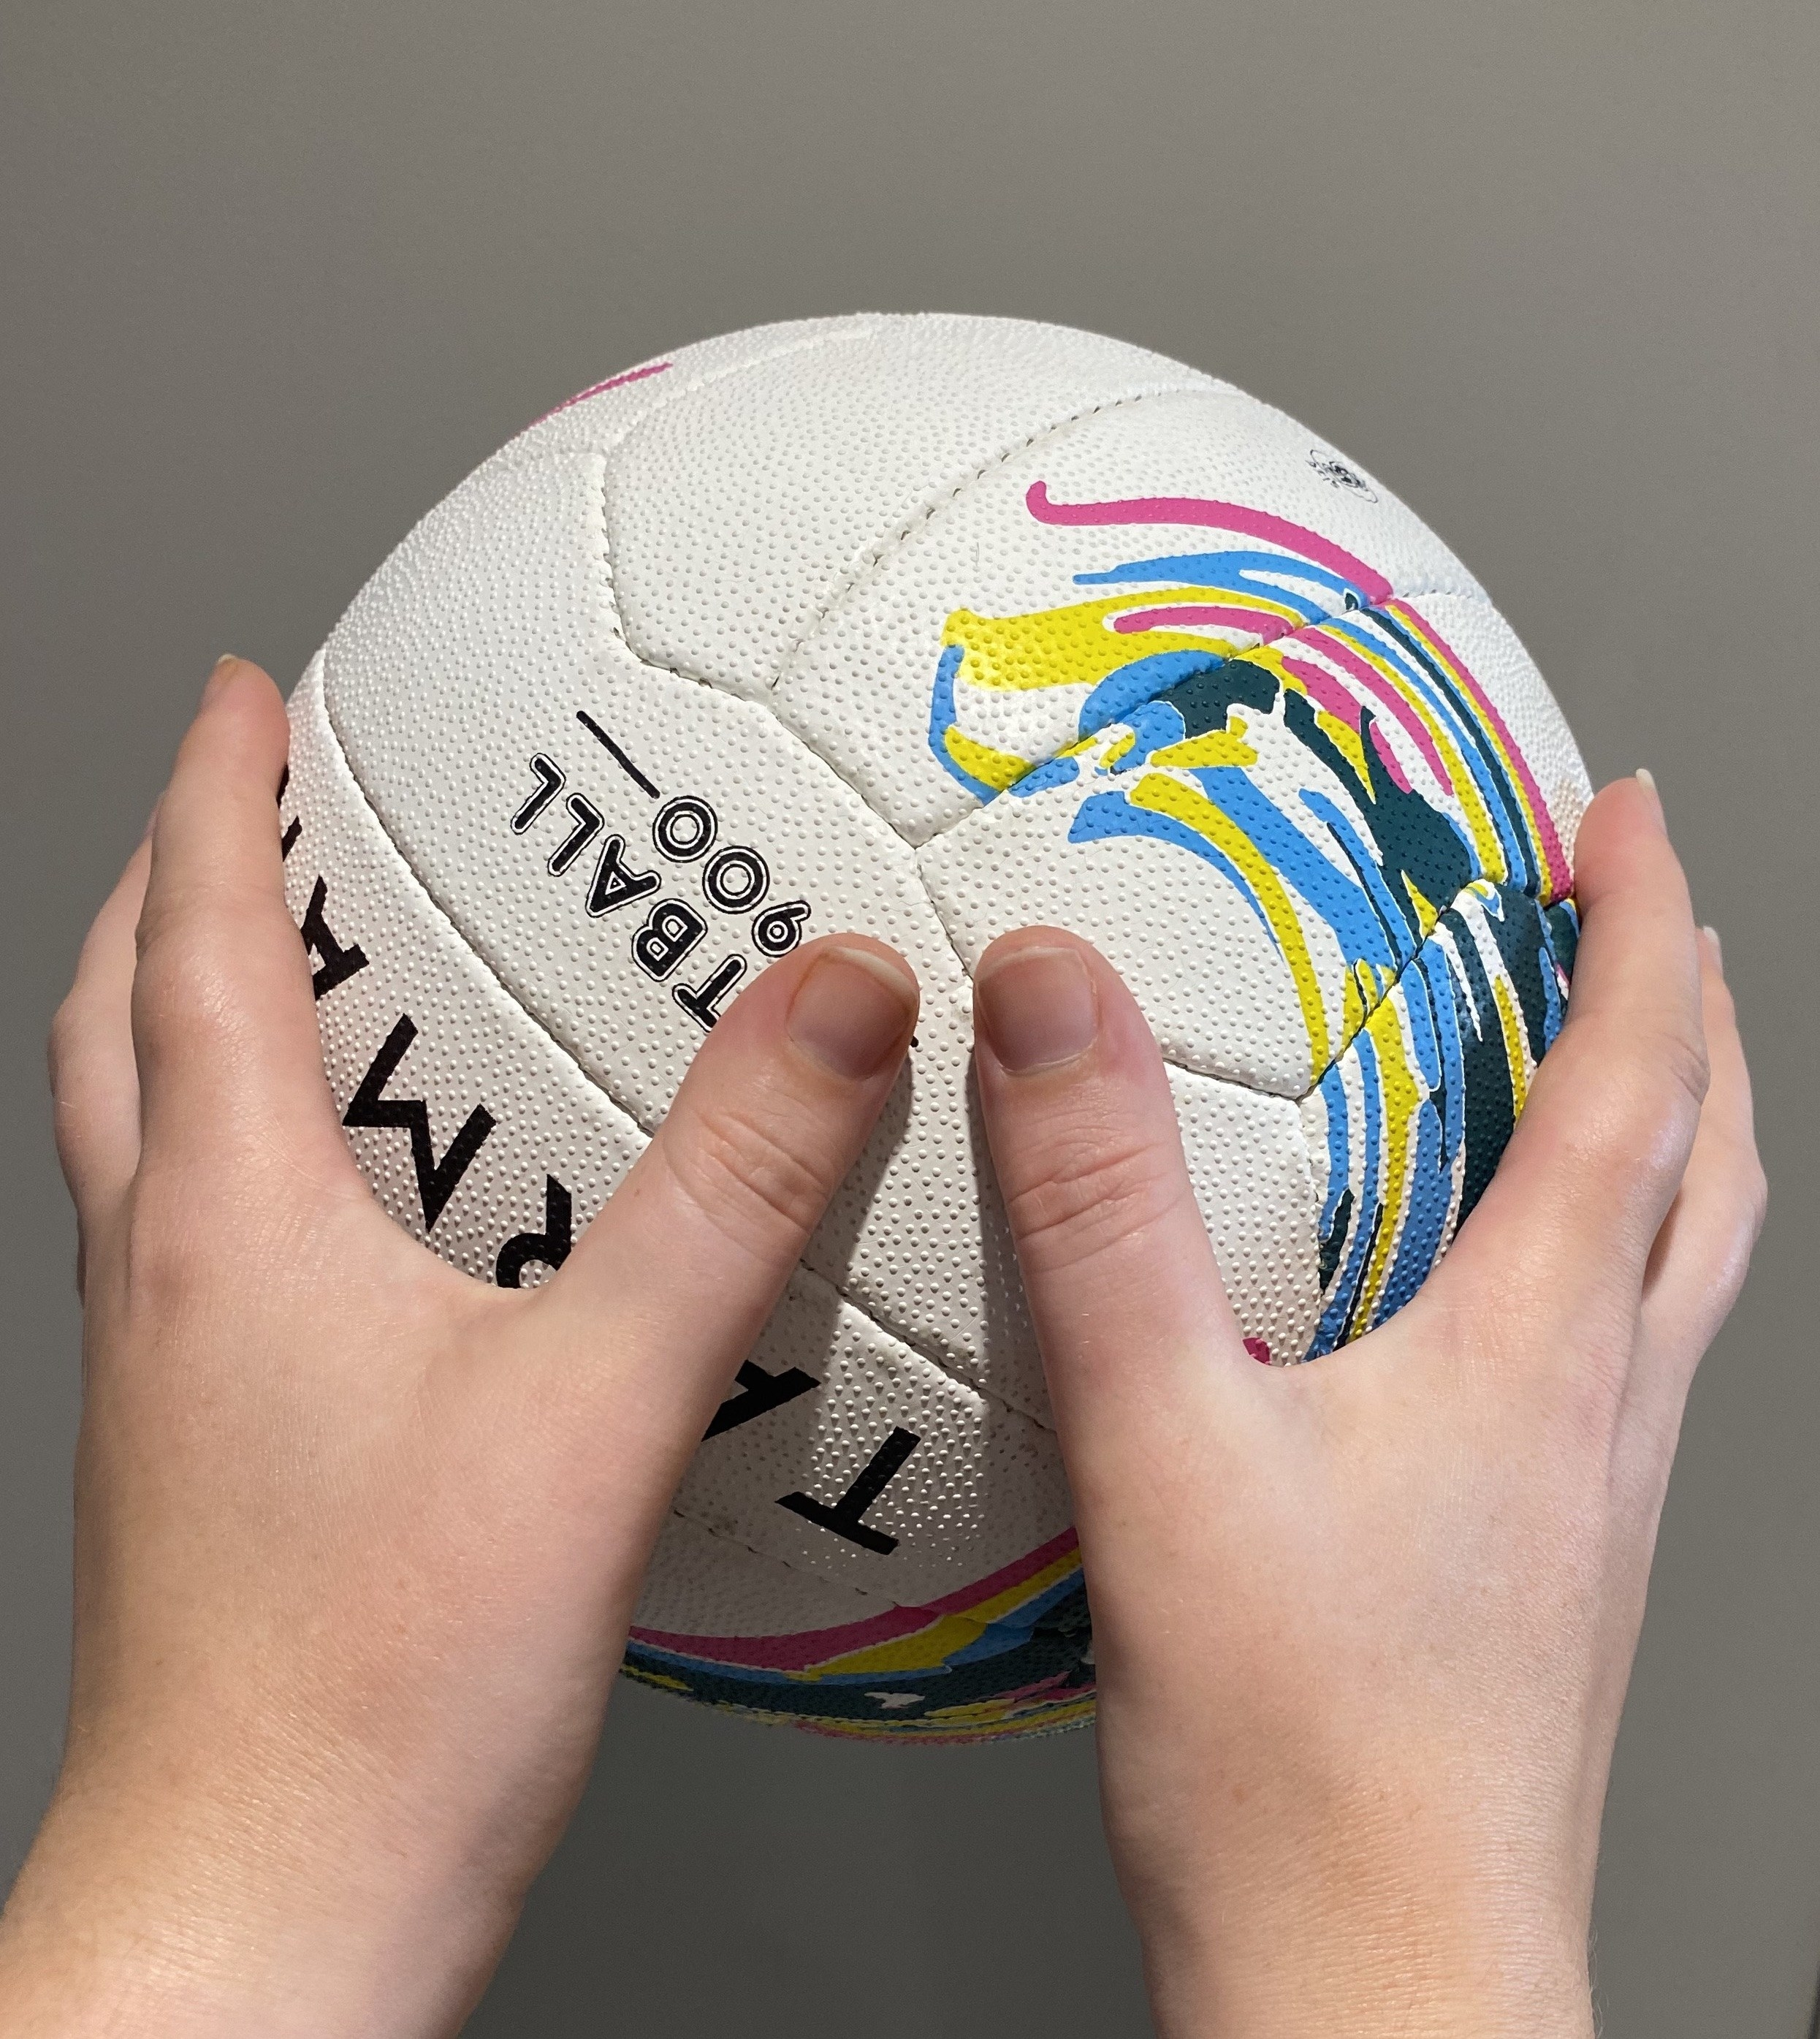 Hands holding a netball with the thumbs close to each other and the fingers splayed around the ball